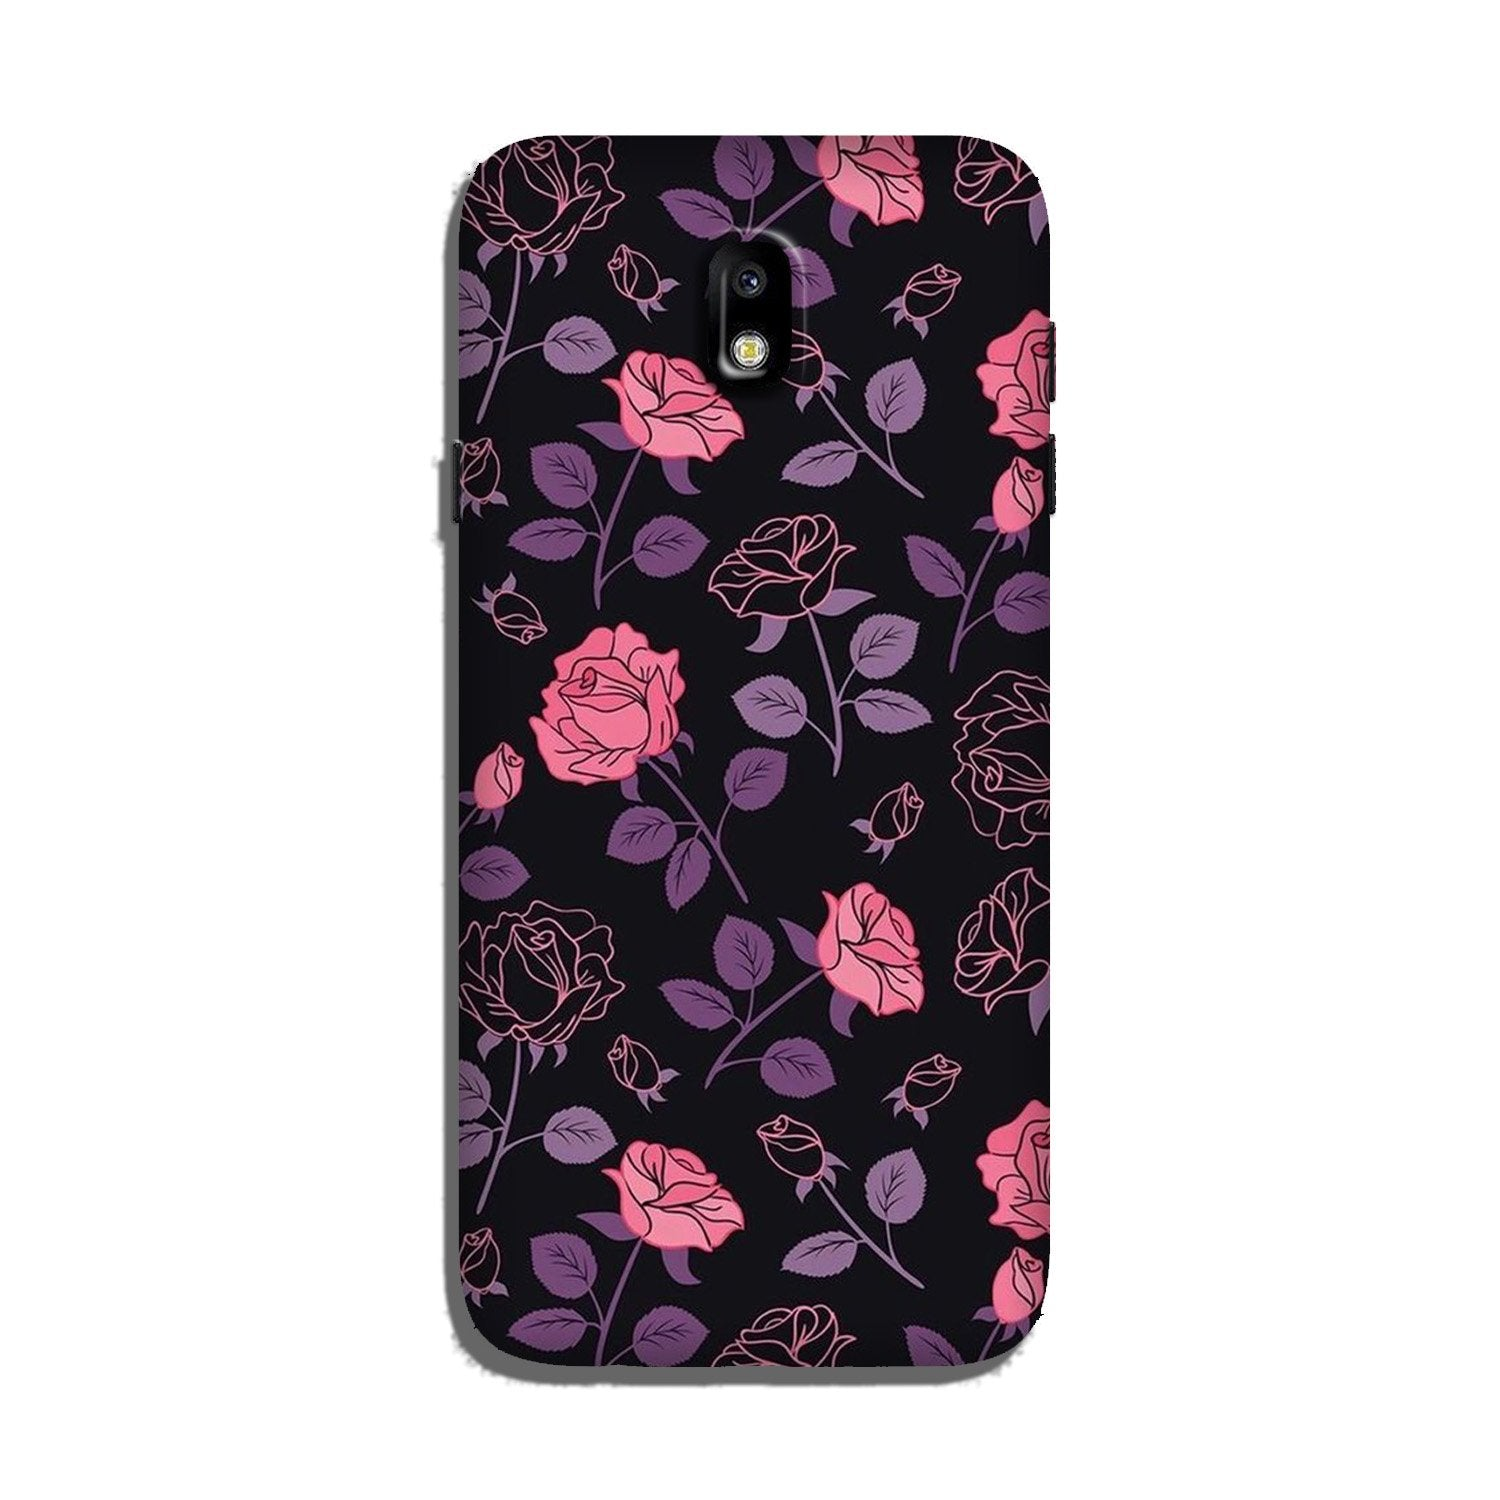 Rose Black Background Case for Galaxy J3 Pro